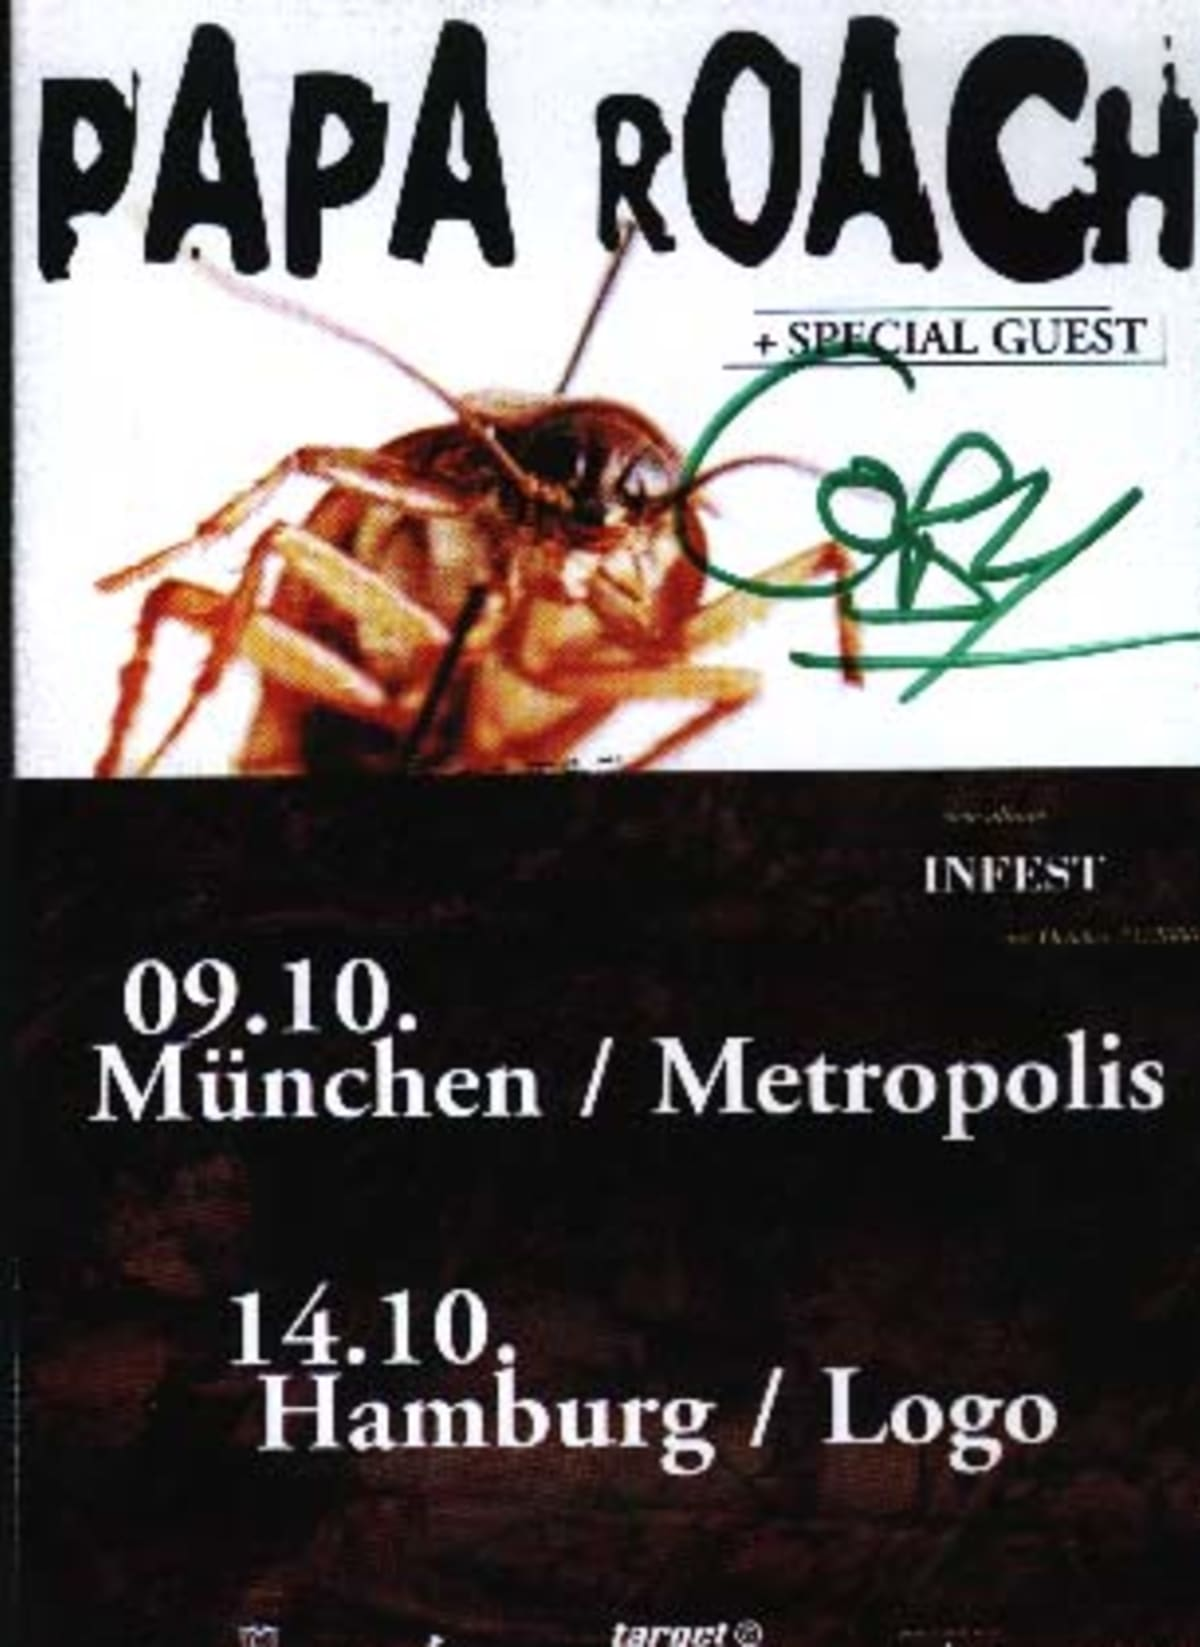 Coby Dick, singer of Papa Roach, autographs a flyer from their European tour